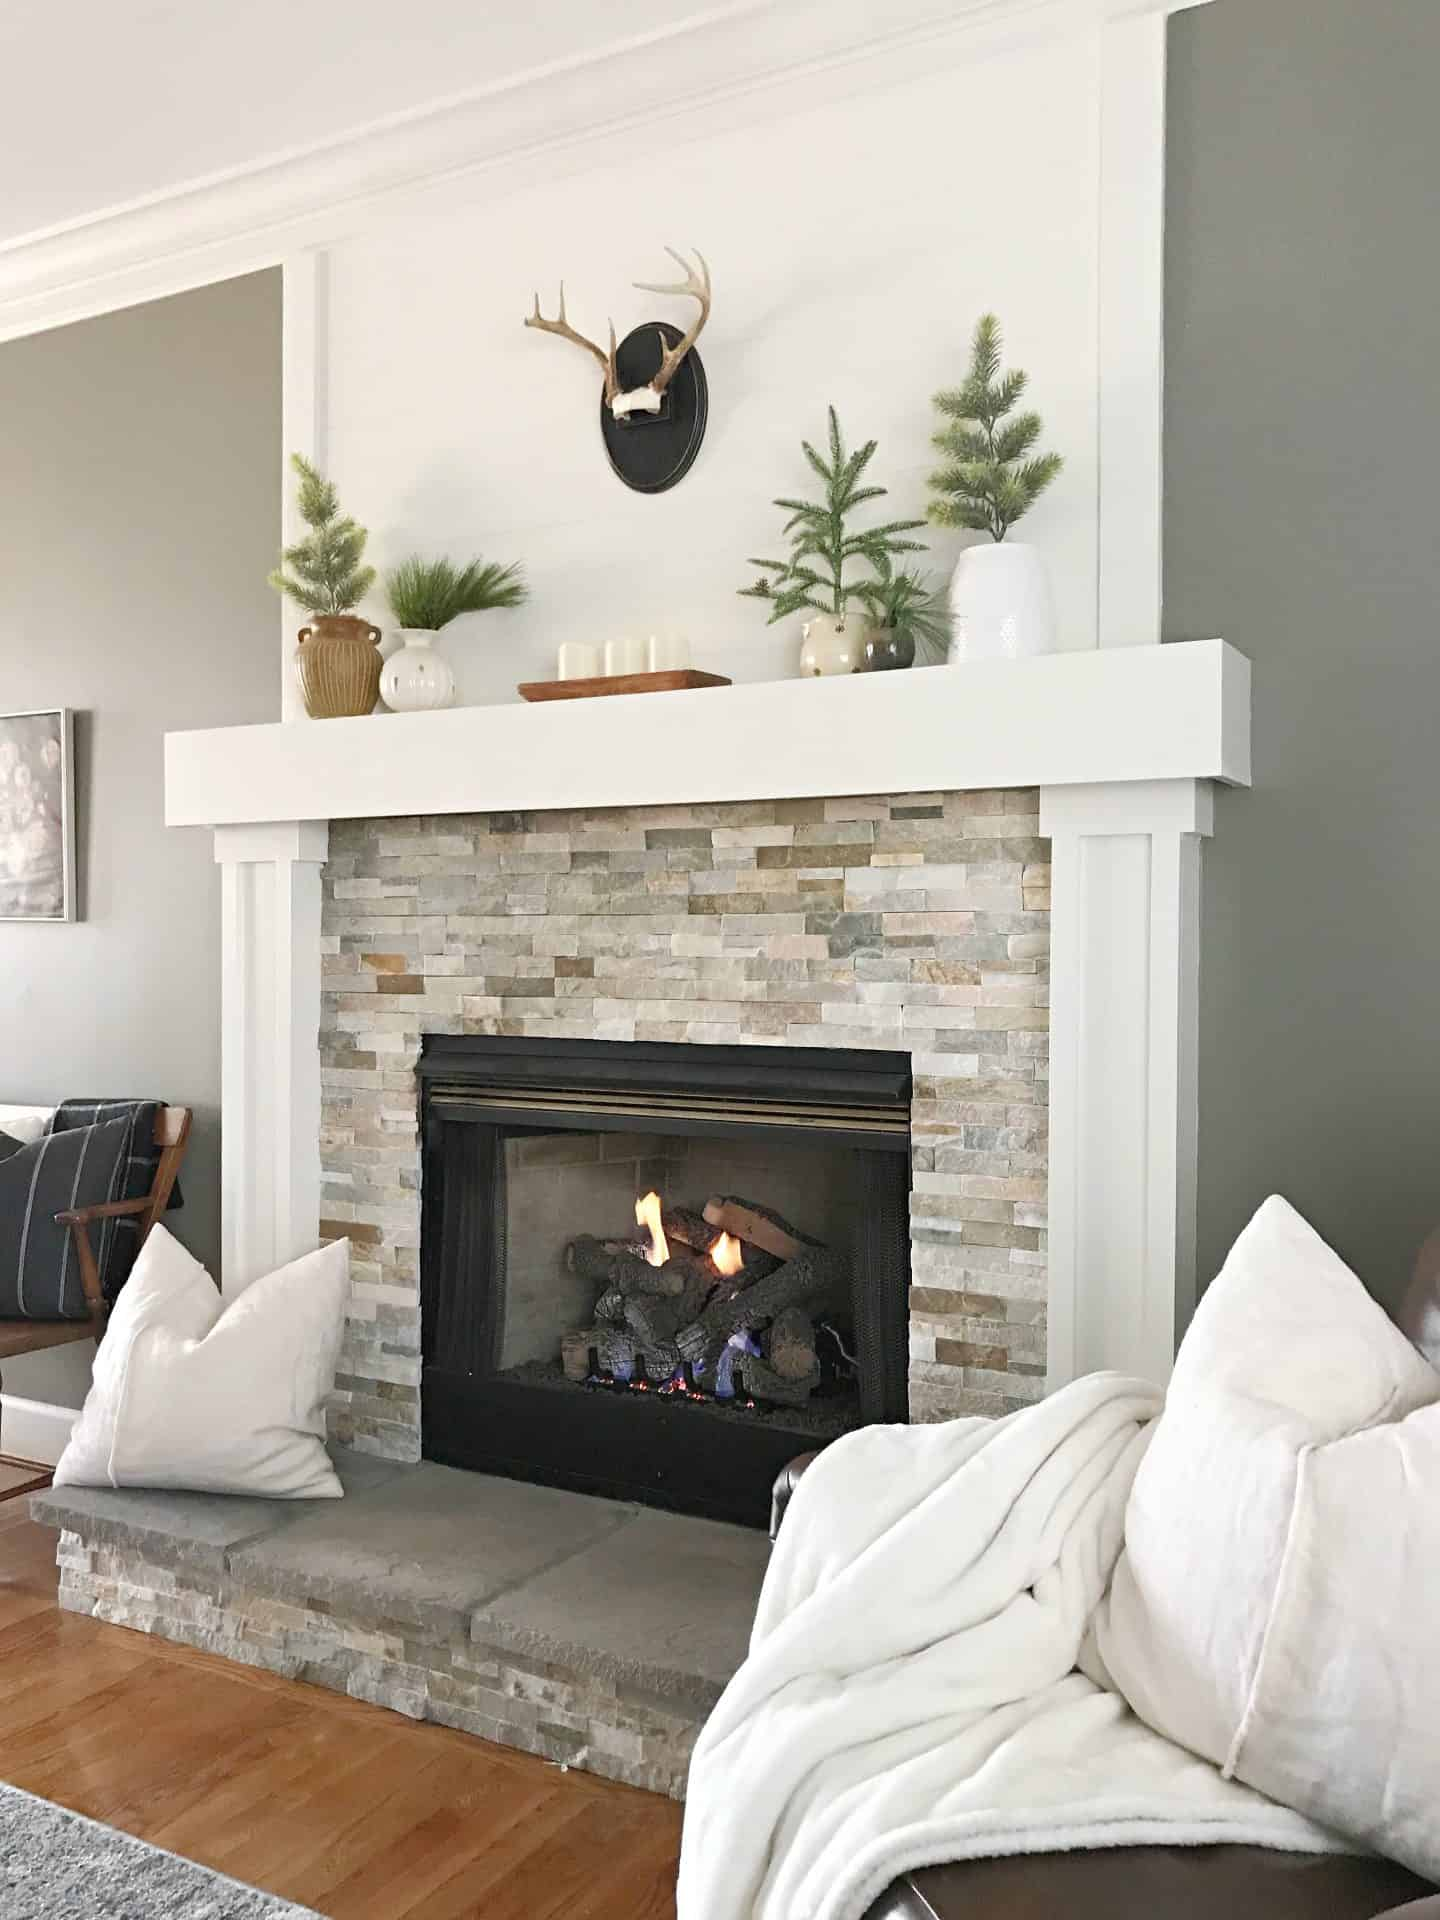 7 Tips for Winter Home Decor after Christmas